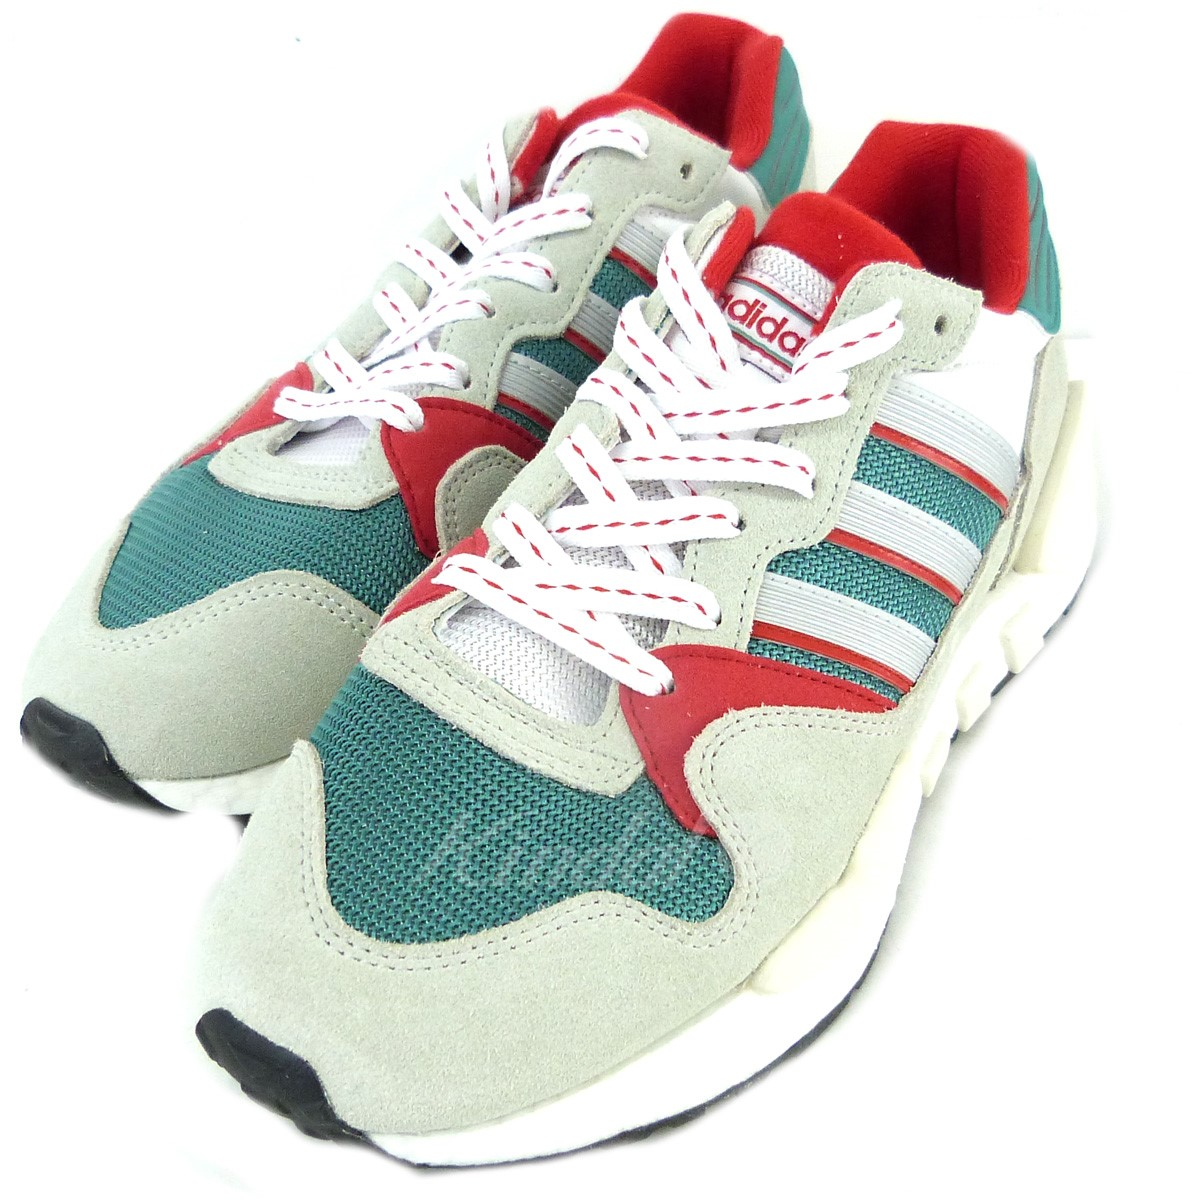 buy online 7a7aa 2bdbe adidas originals G26806